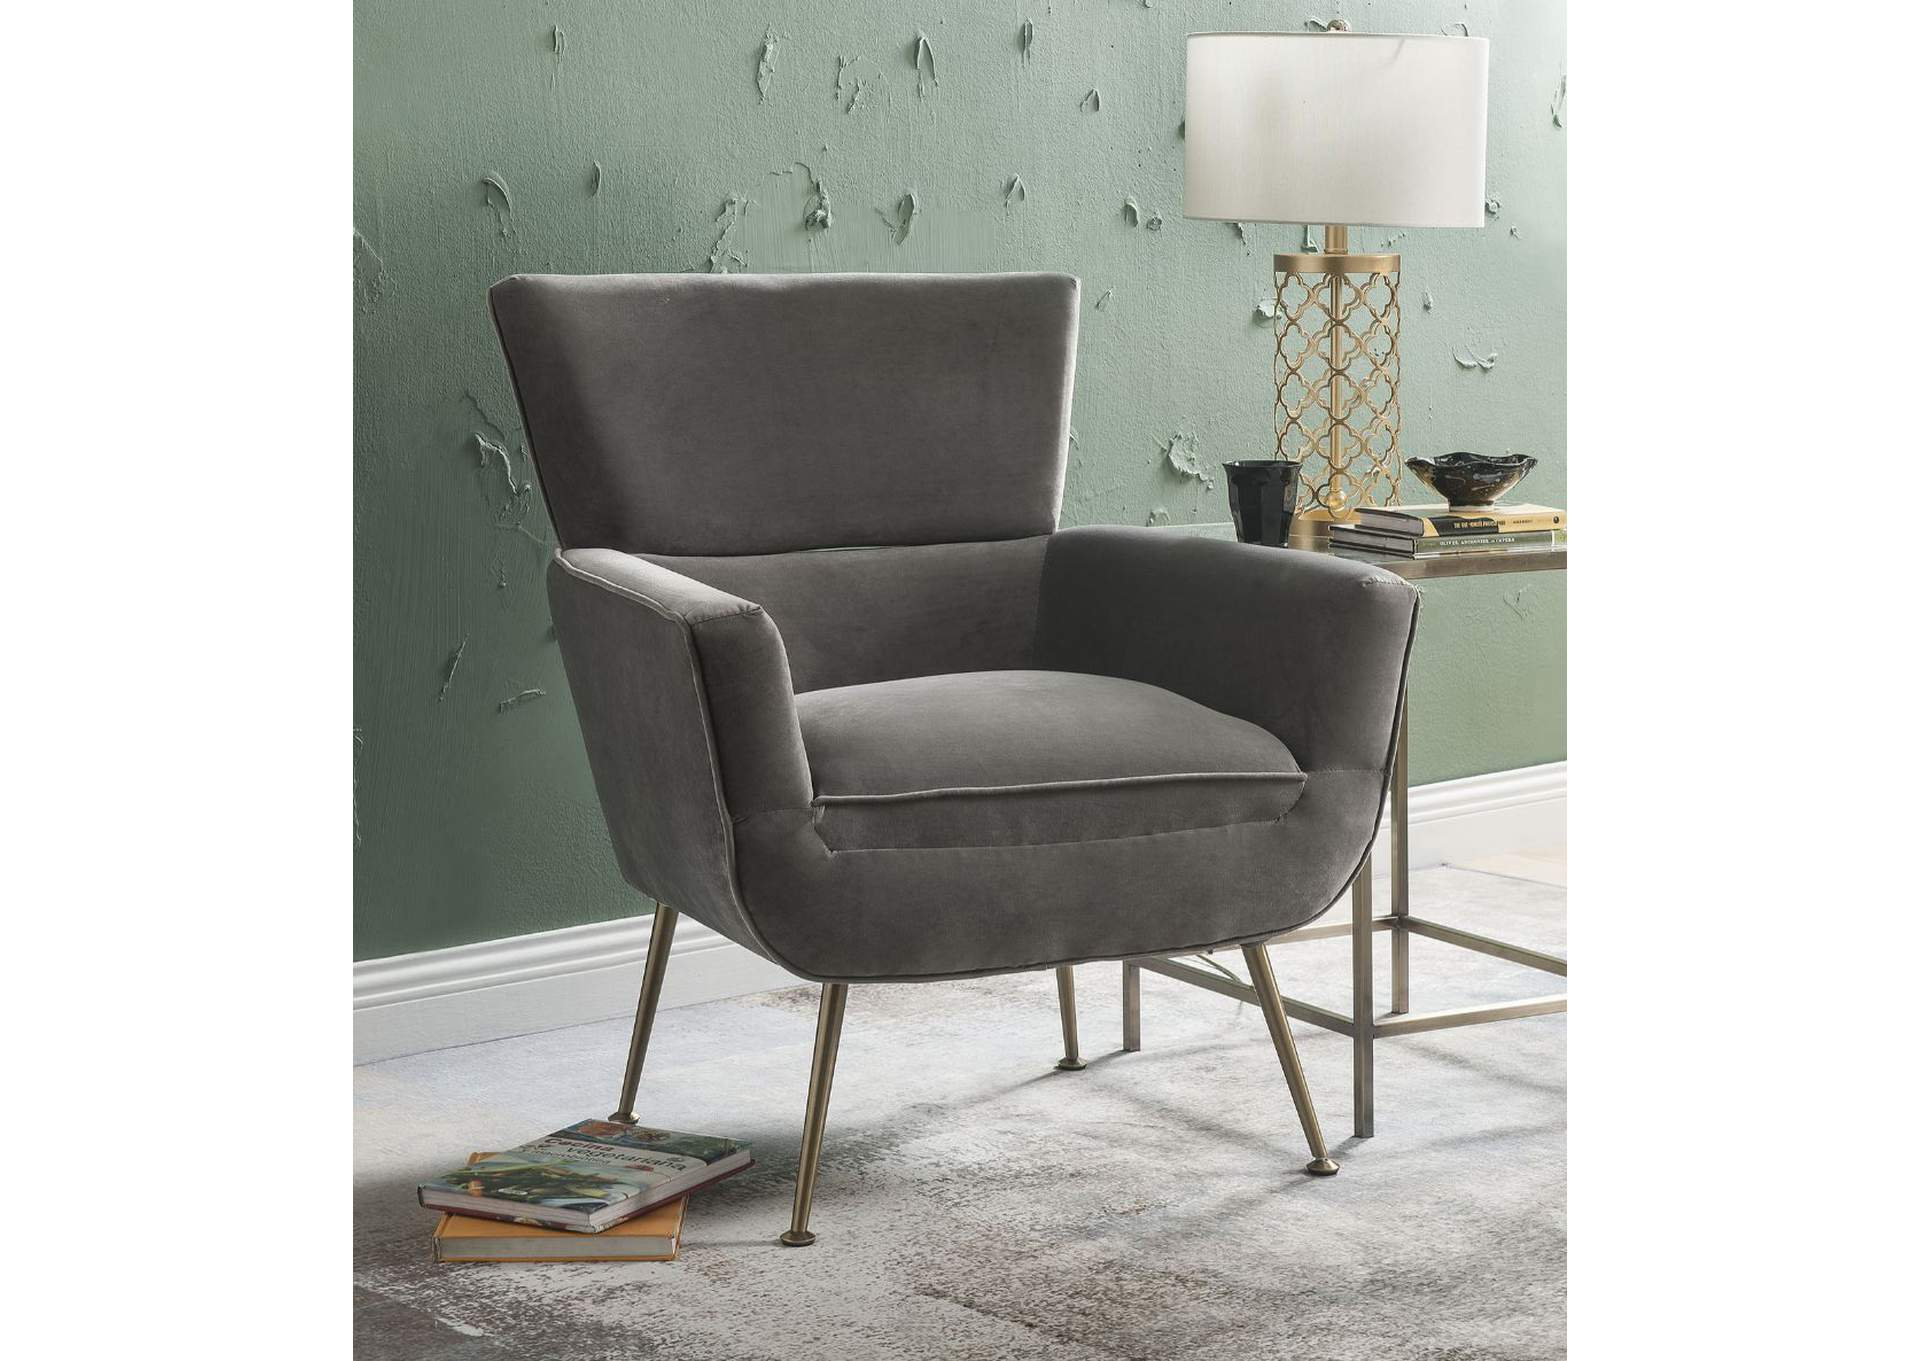 Phenomenal Charisma Furniture Varik Gray Accent Chair Creativecarmelina Interior Chair Design Creativecarmelinacom